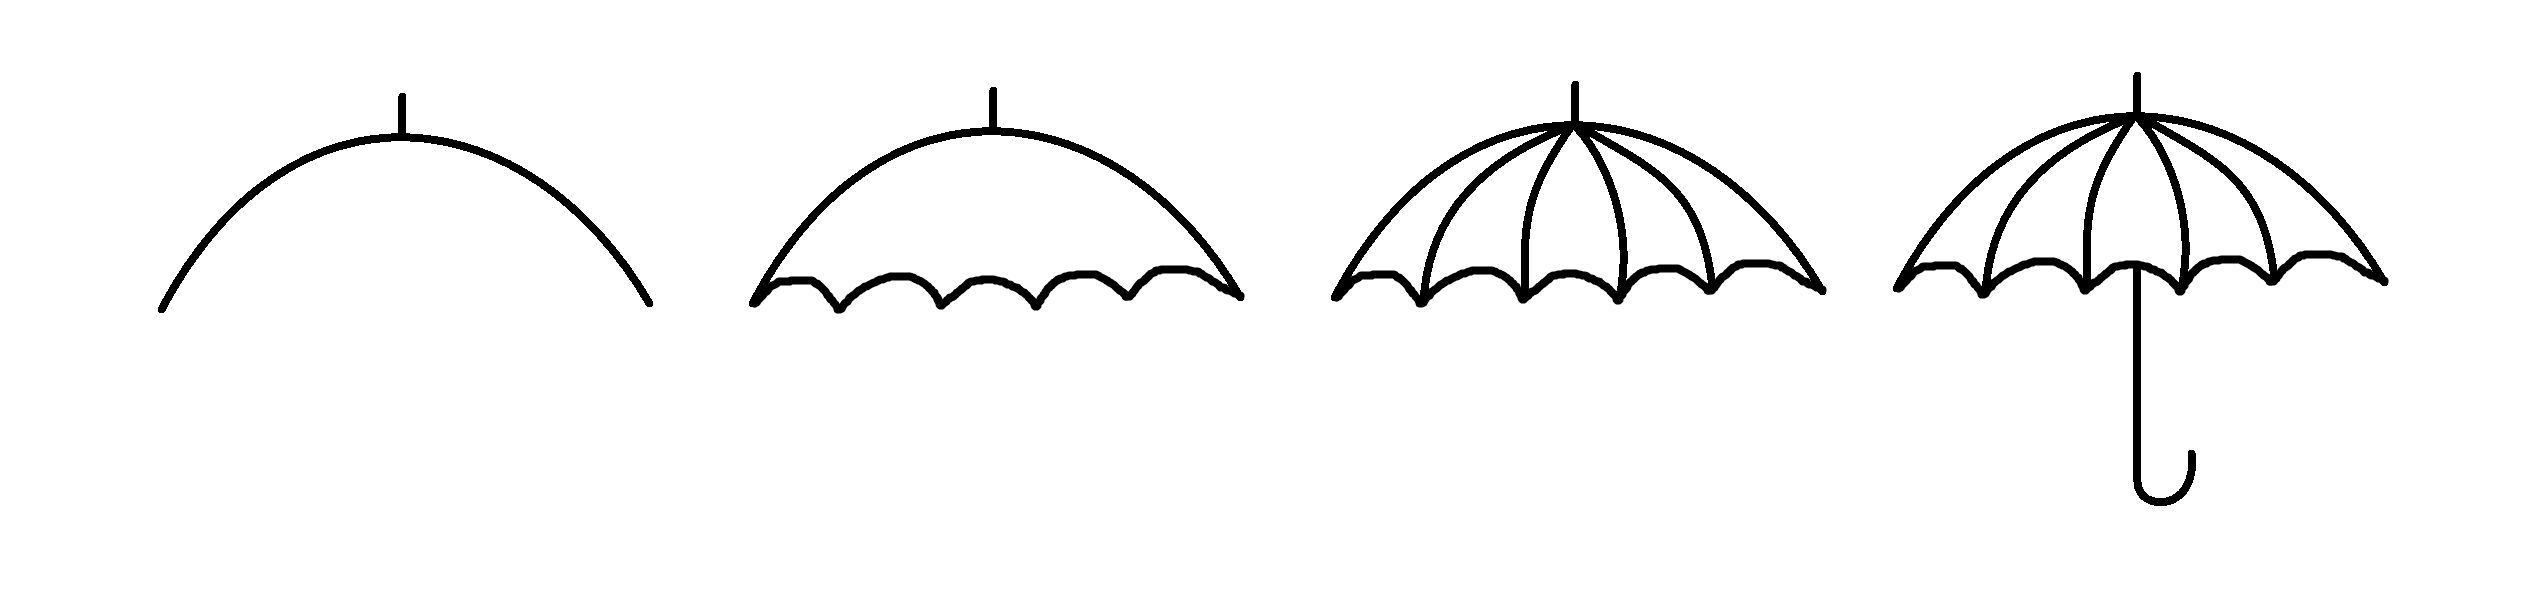 how to draw umbrella step by step how to draw an umbrella for kids drawingsforkidsnet step umbrella draw how by step to